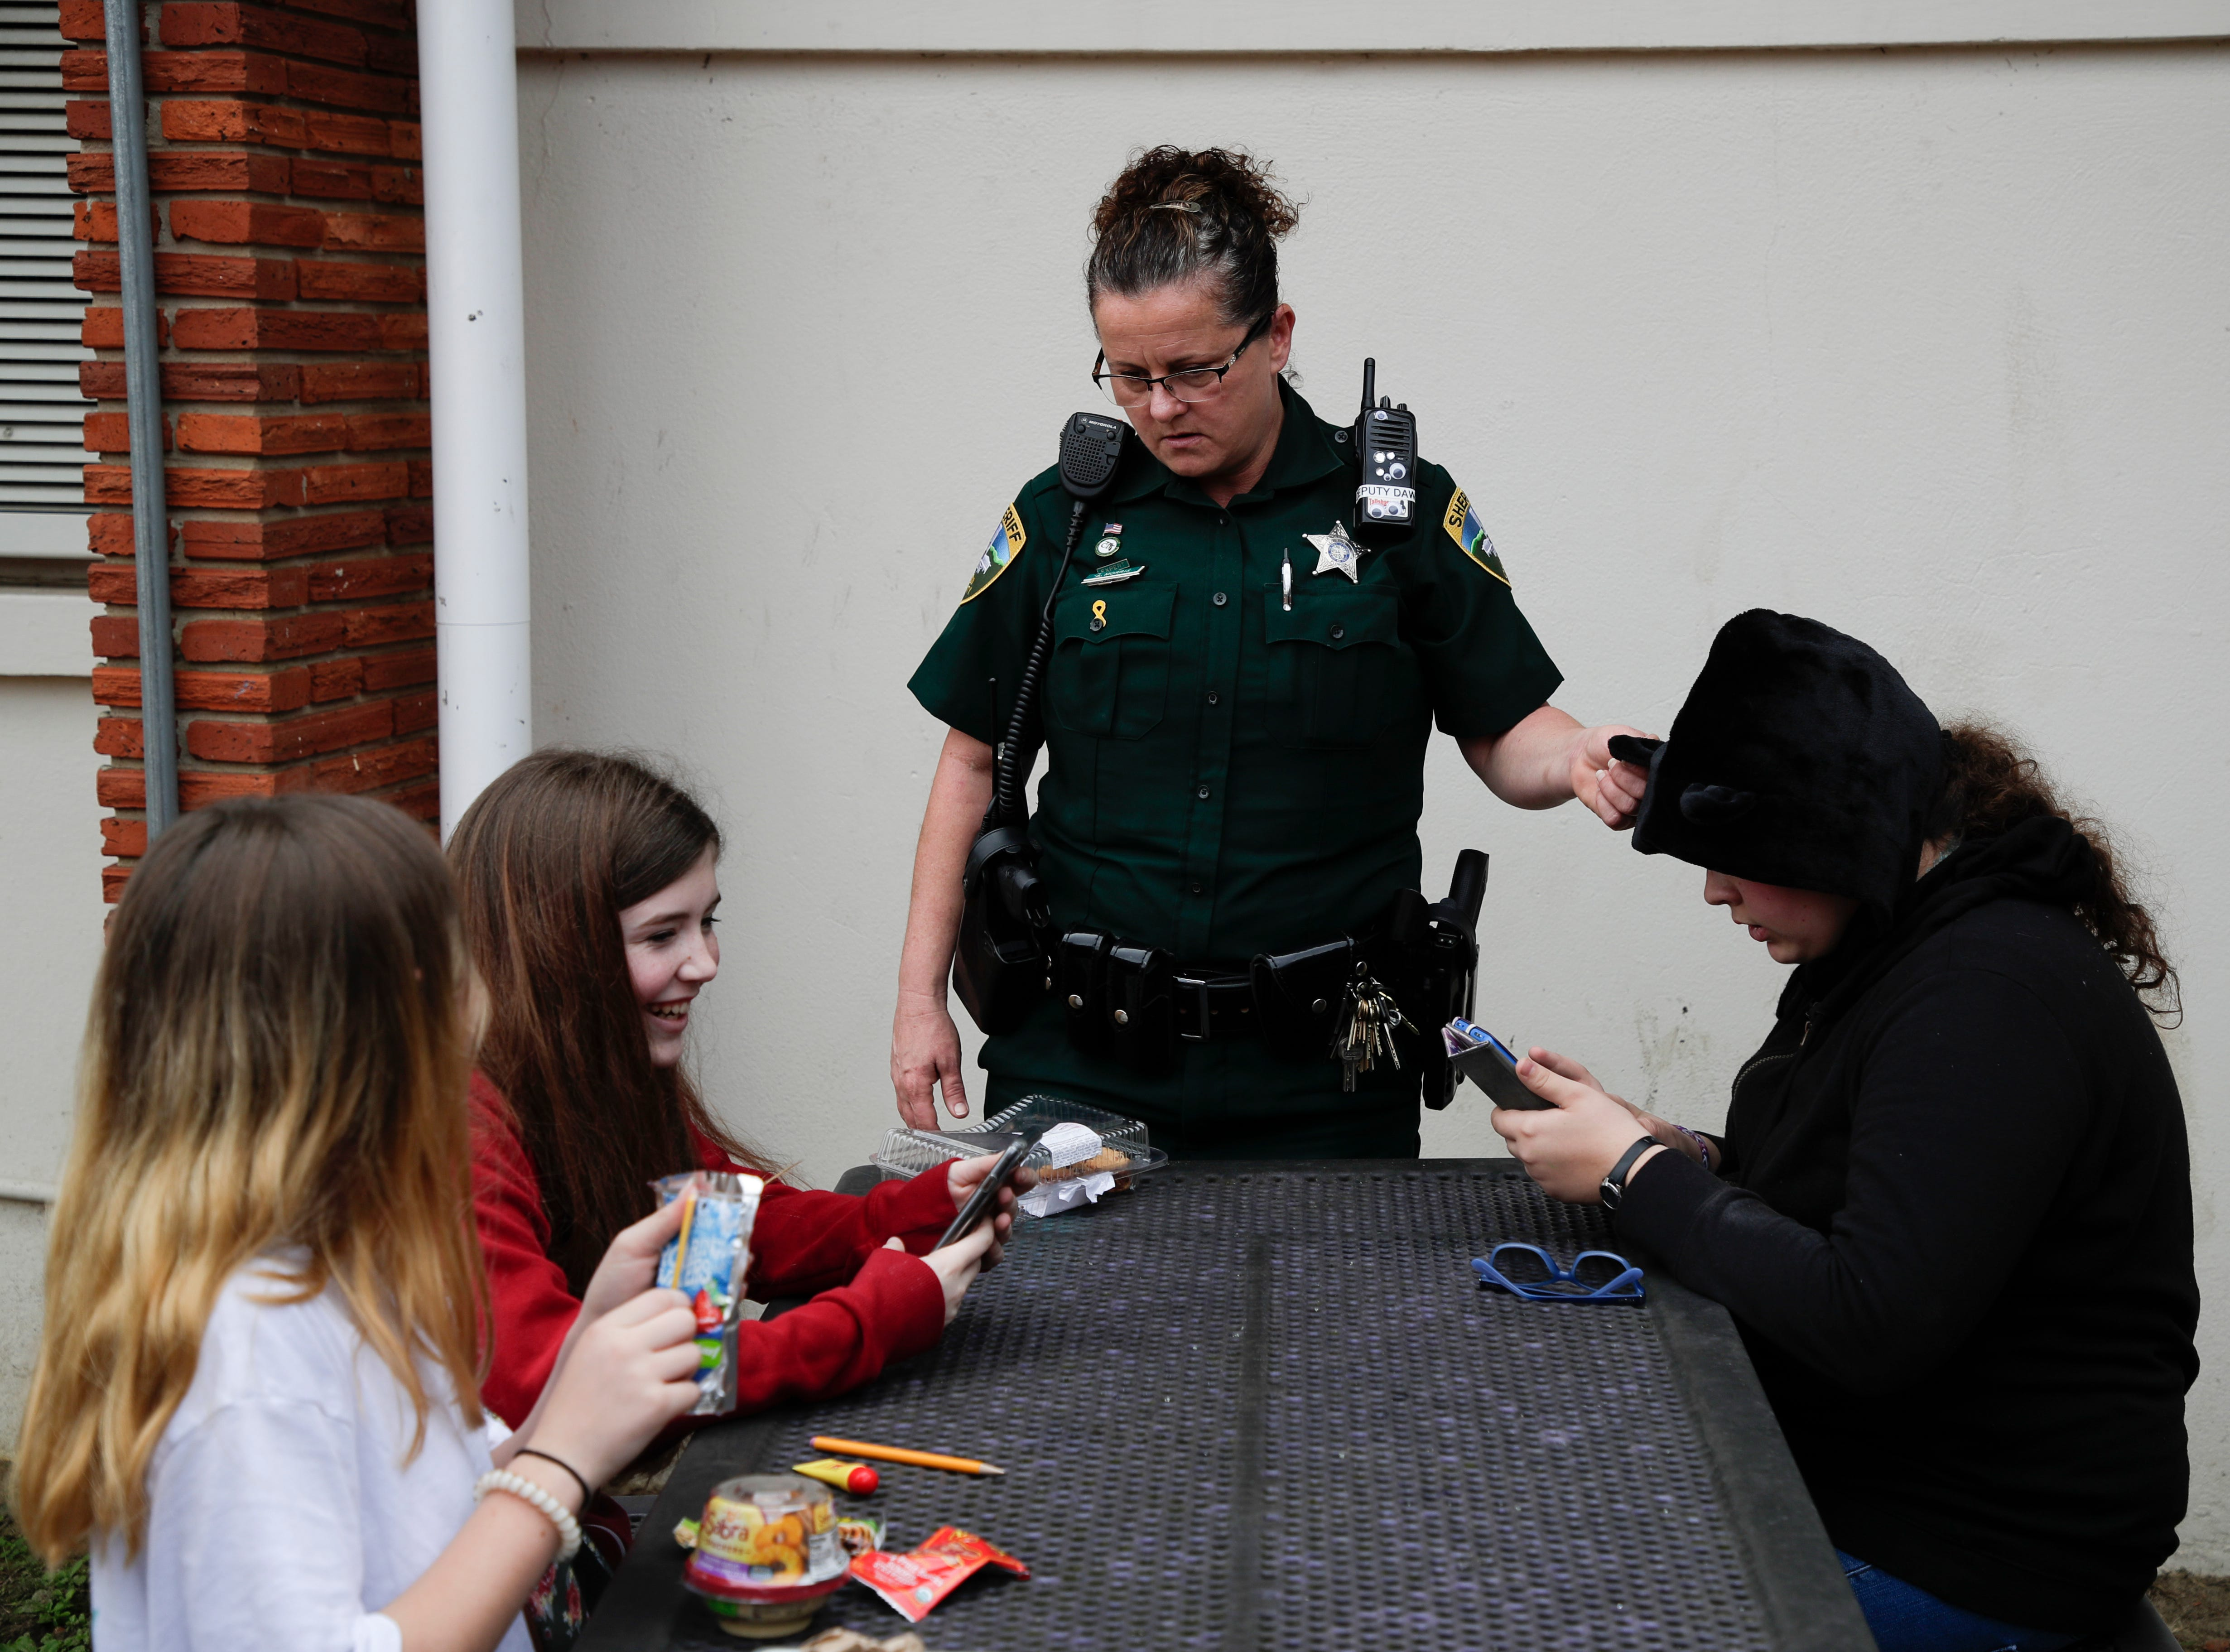 Leon County Sheriff's Department Deputy Jennifer Morris, school resource officer at Cobb Middle School, talks with a group of students during lunch Tuesday, Feb. 12, 2019.